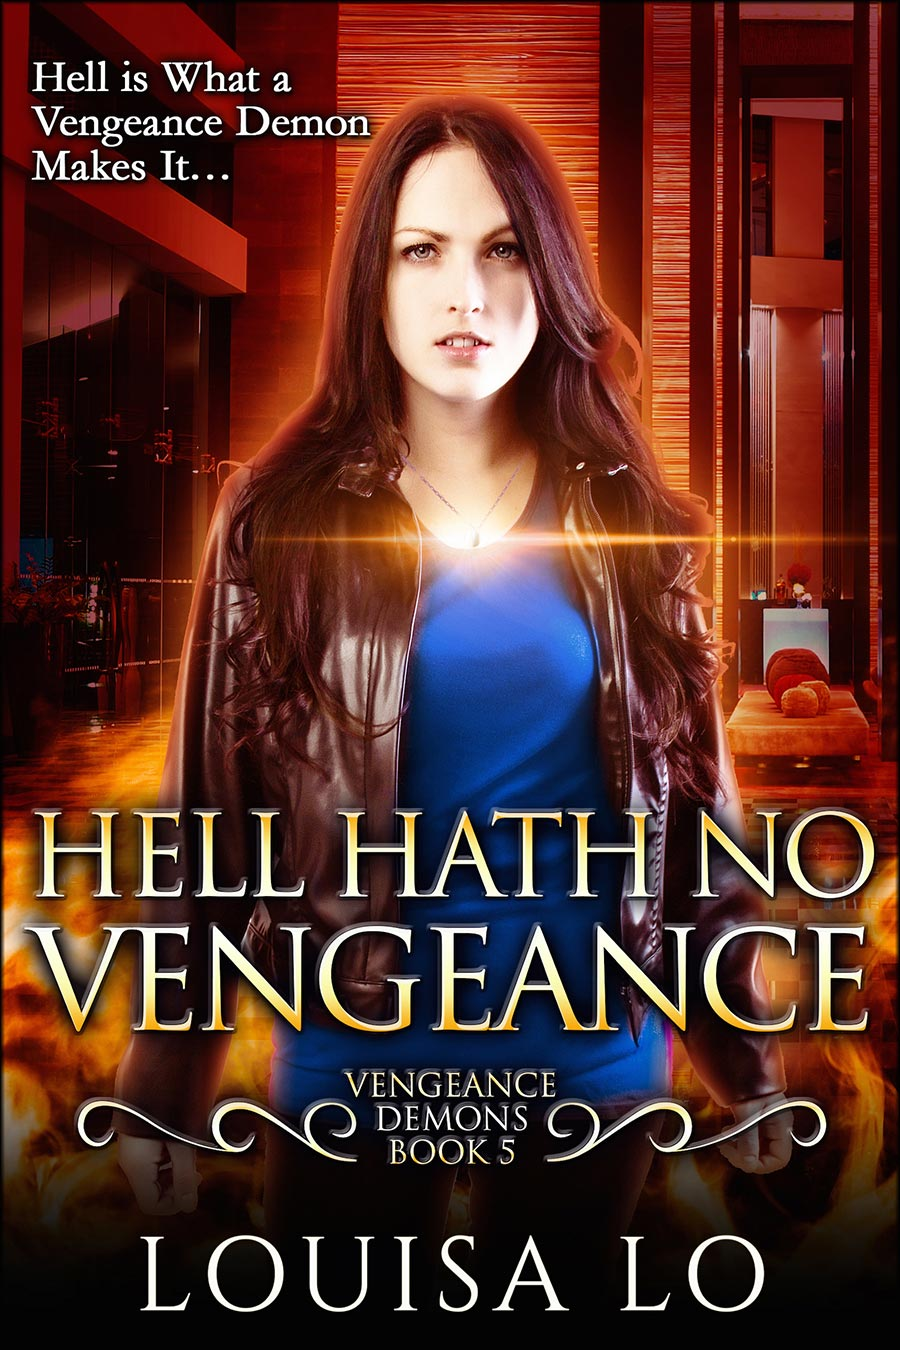 Louisa-Lo---Hell-Hath-No-Vengeance---book-5.jpg